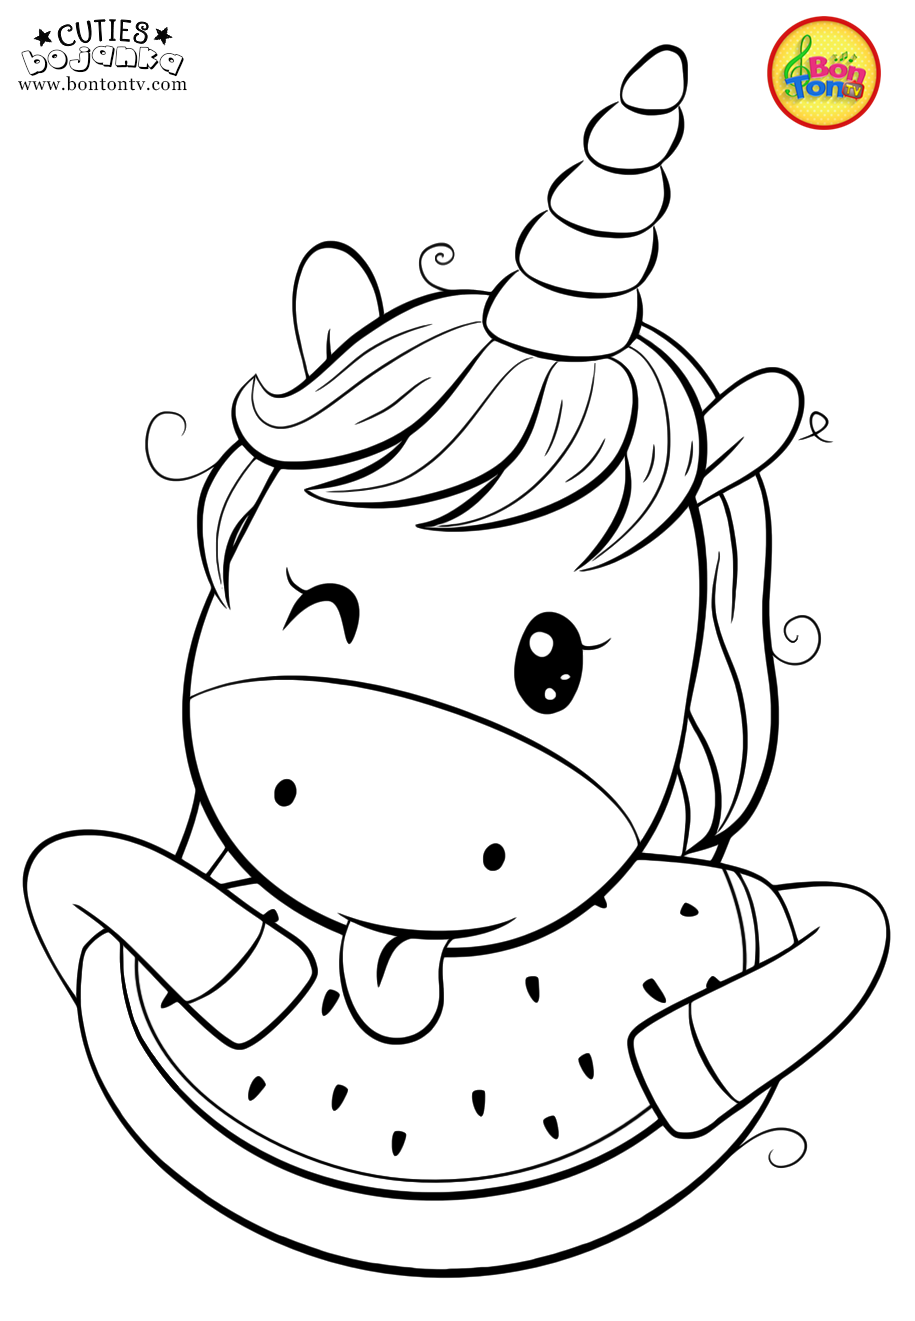 Cuties Coloring Pages For Kids Free Preschool Printables Slatkice Bojanke Cute Animal Unicorn Coloring Pages Free Kids Coloring Pages Cute Coloring Pages